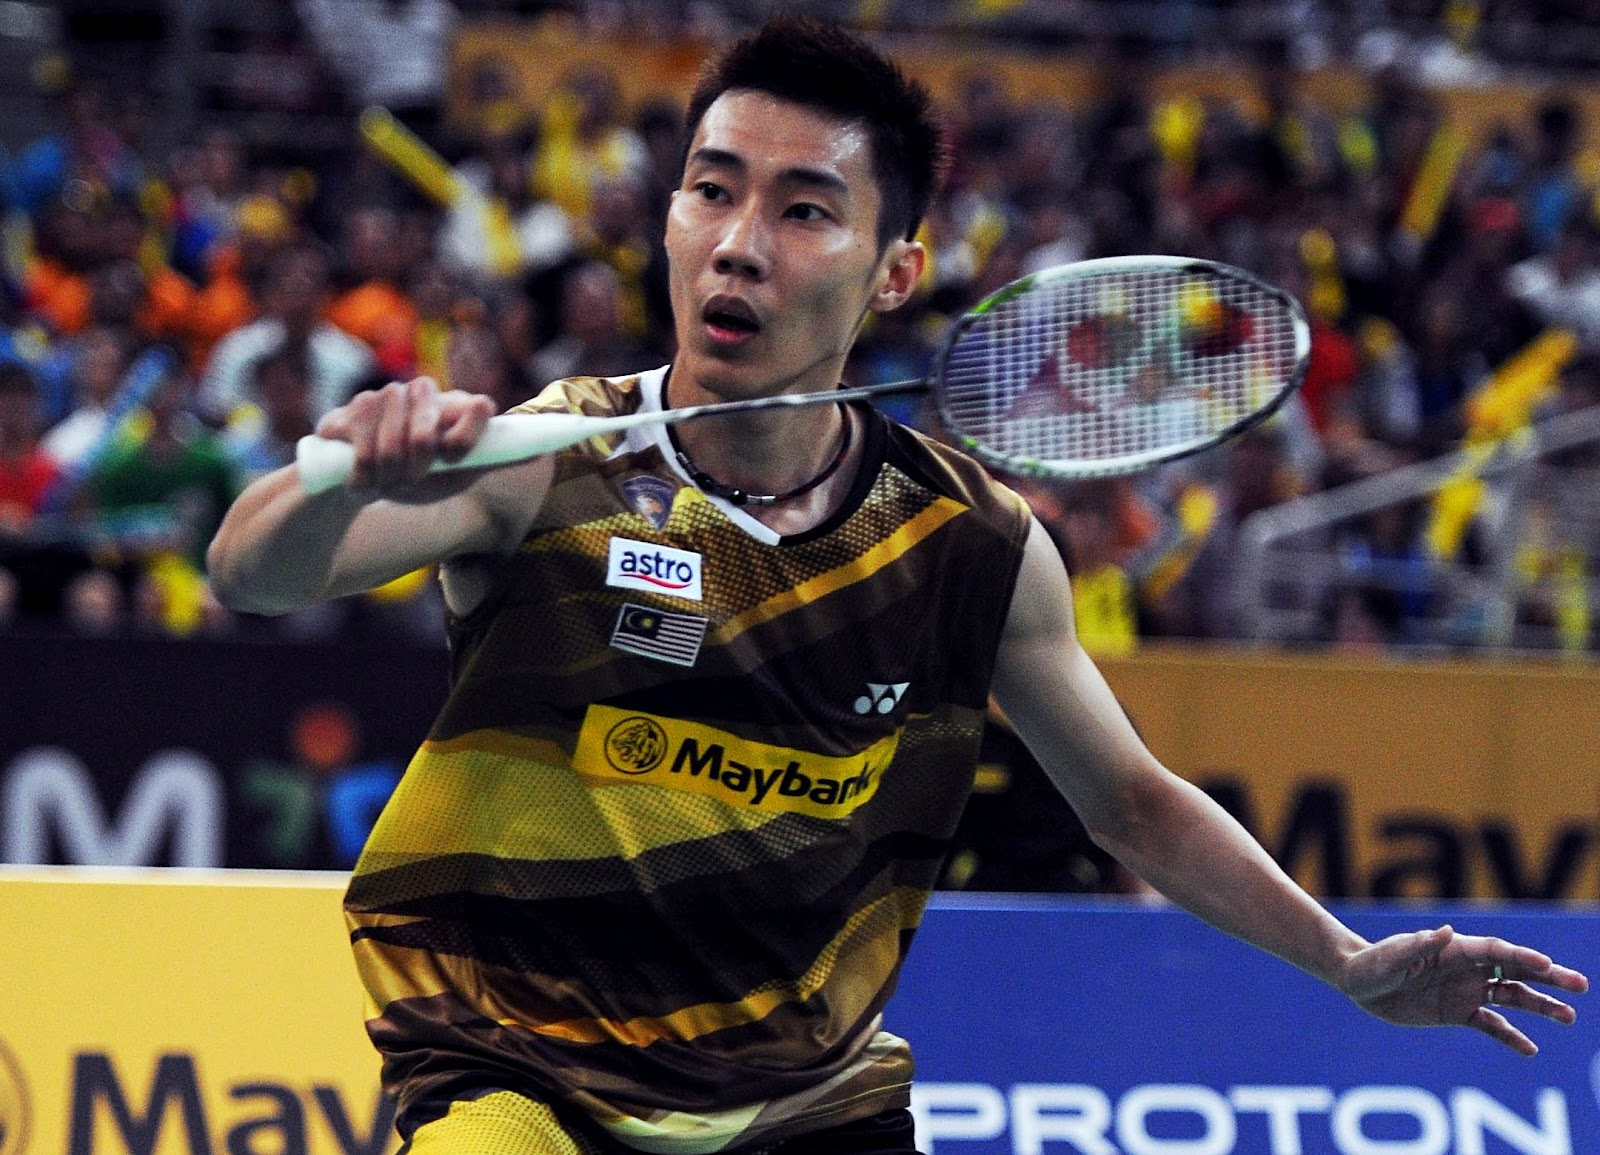 lee chong wei i admire the most Badminton bay's blog delivering badminton to the  watch the video and you will be amazed and admire the hard work required to be the  lee chong wei (lcw).